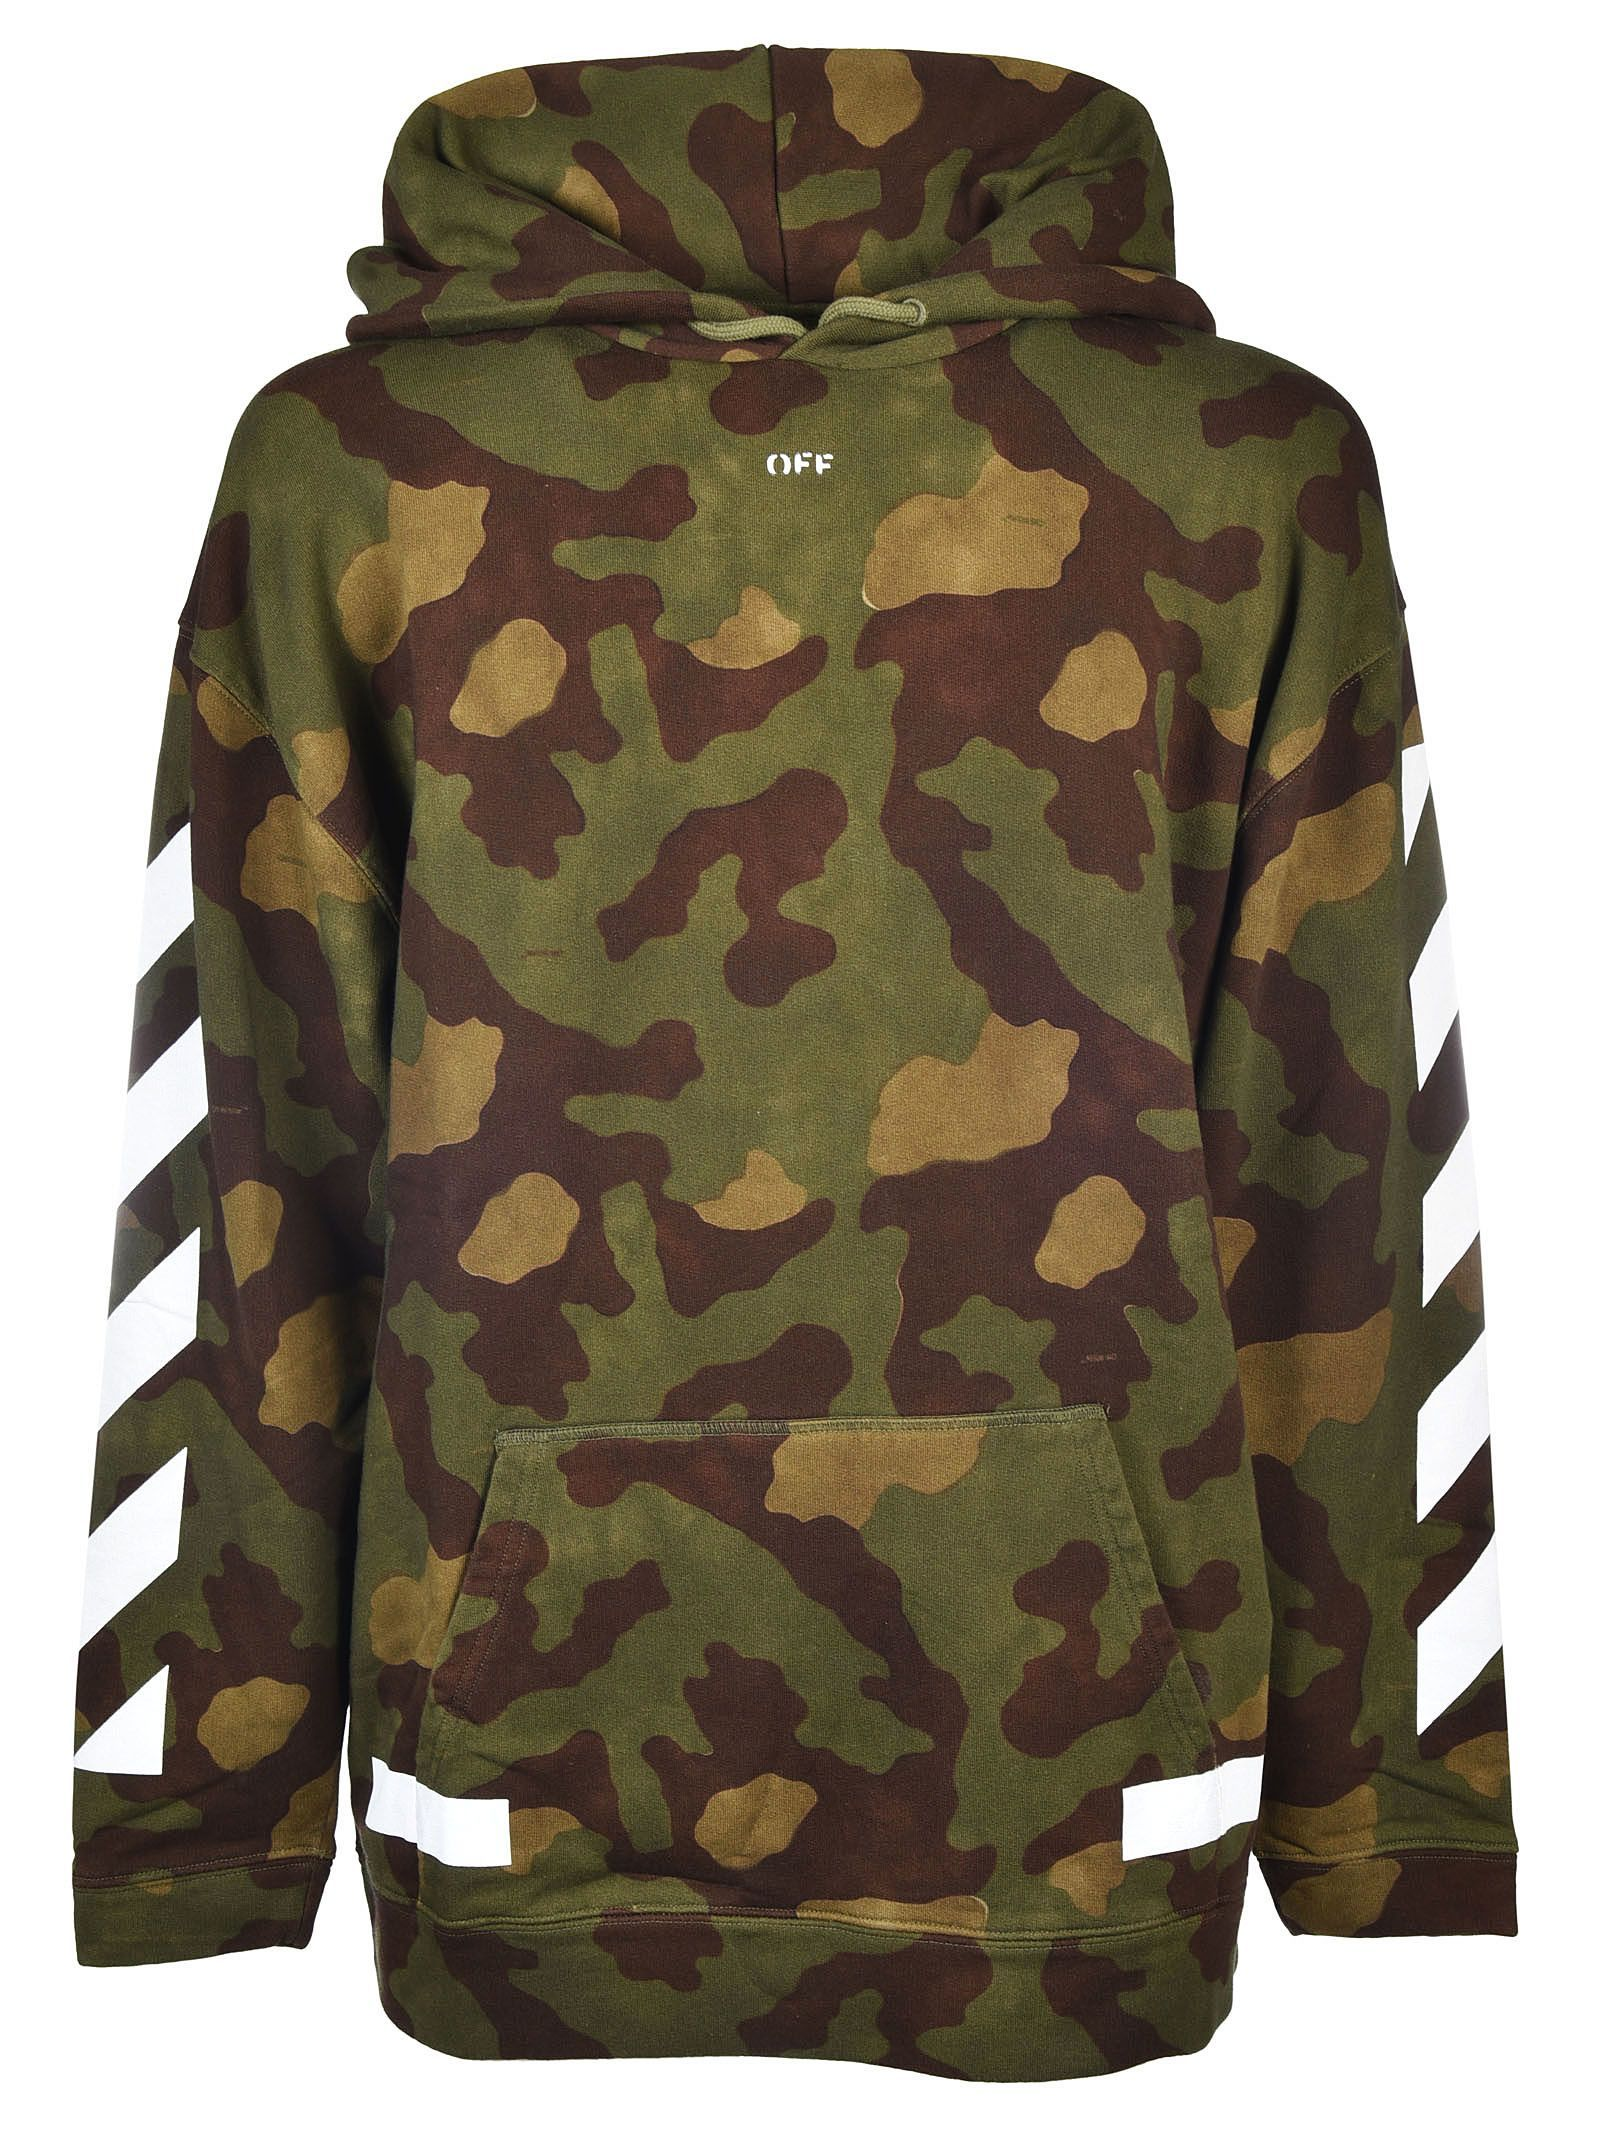 6fc0854611d7 OFF-WHITE OFF-WHITE DIAG CAMOUFLAGE HOODIE.  off-white  cloth ...